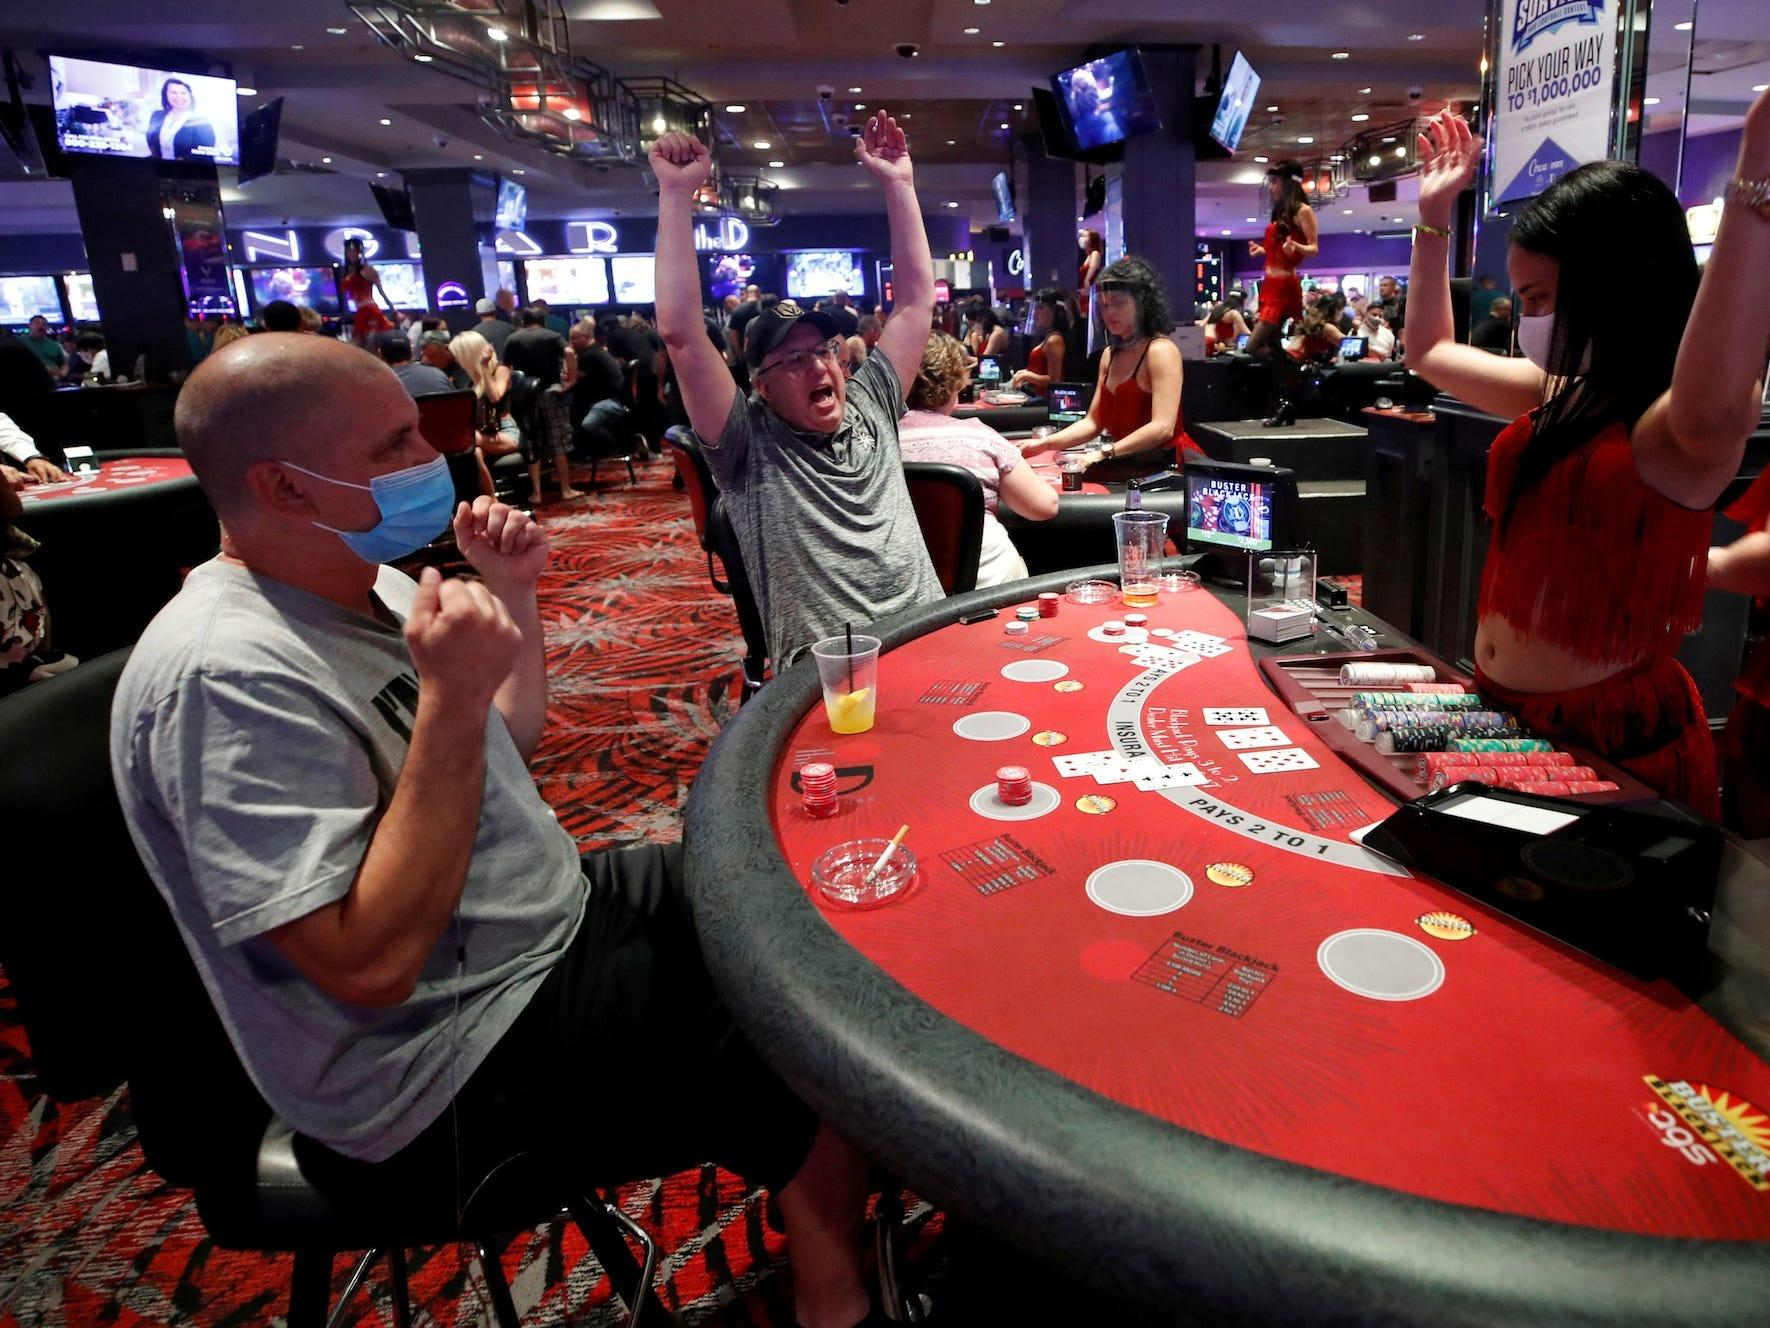 Online poker, casino games businesses triple as casinos close - Business  Insider